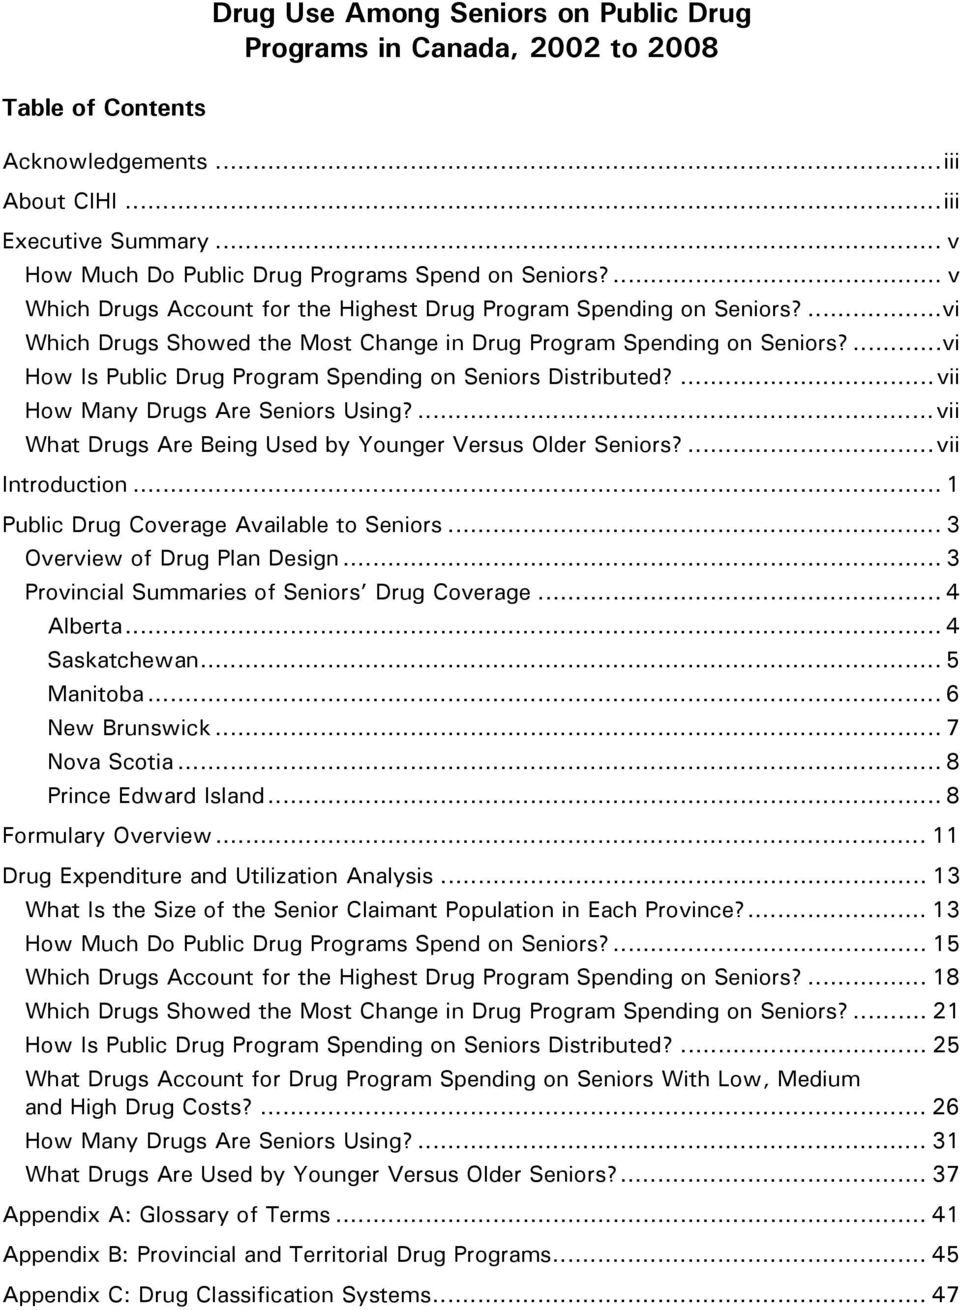 ... vi Which Drugs Showed the Most Change in Drug Program Spending on Seniors?... vi How Is Public Drug Program Spending on Seniors Distributed?... vii How Many Drugs Are Seniors Using?